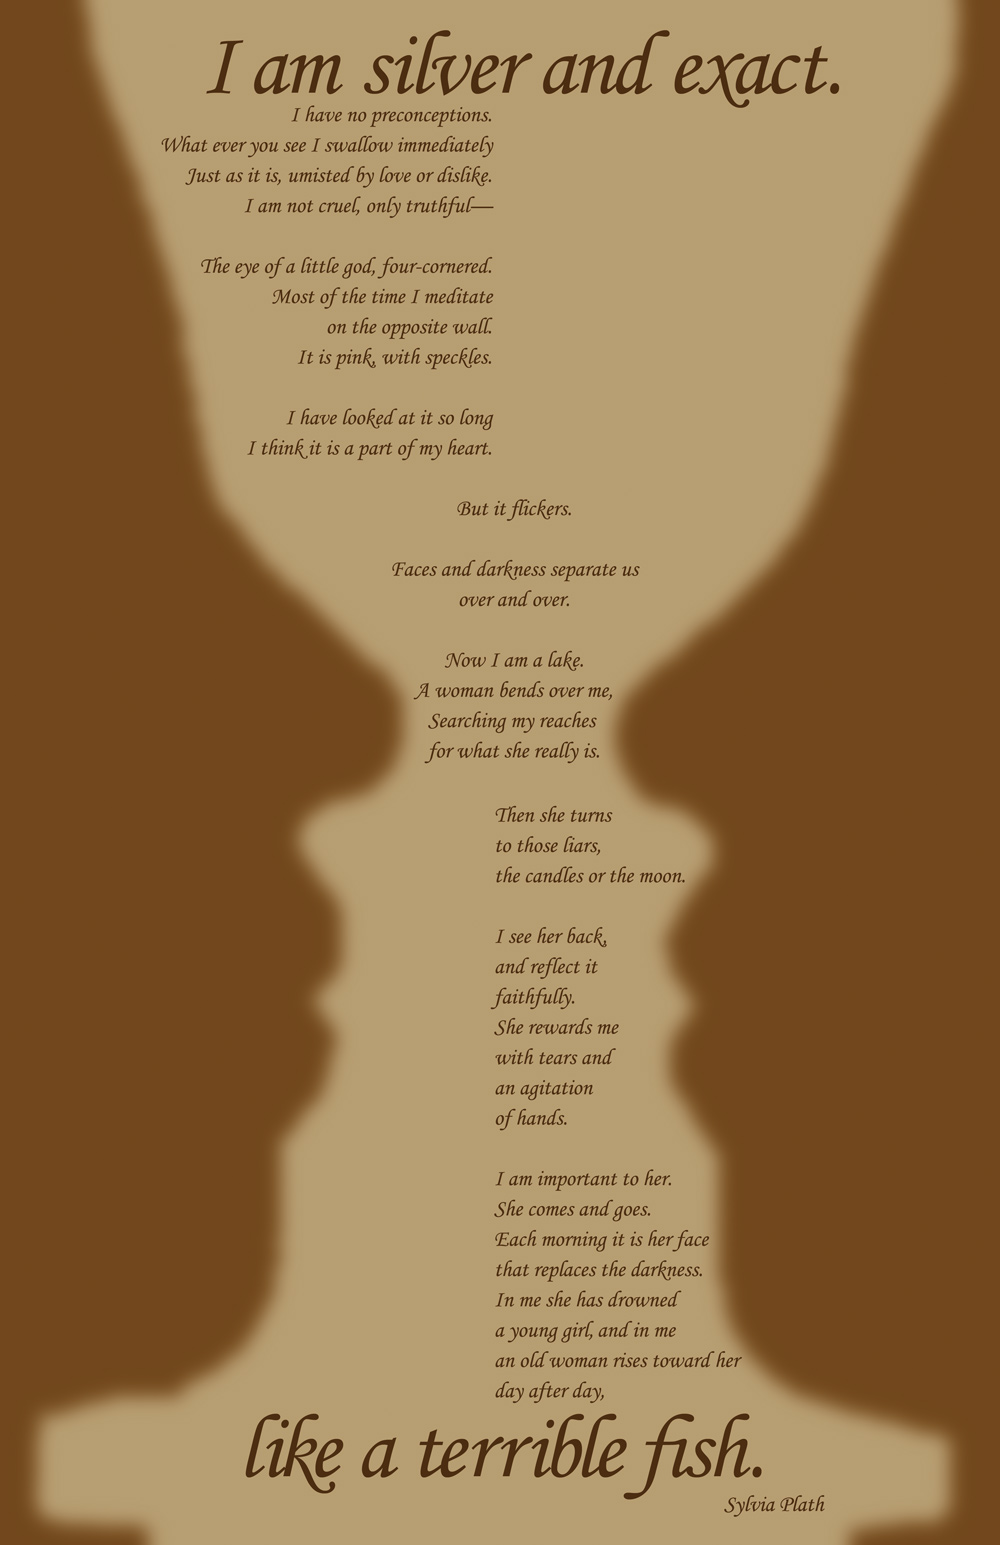 literary devices in the poem mirror by sylvia plath